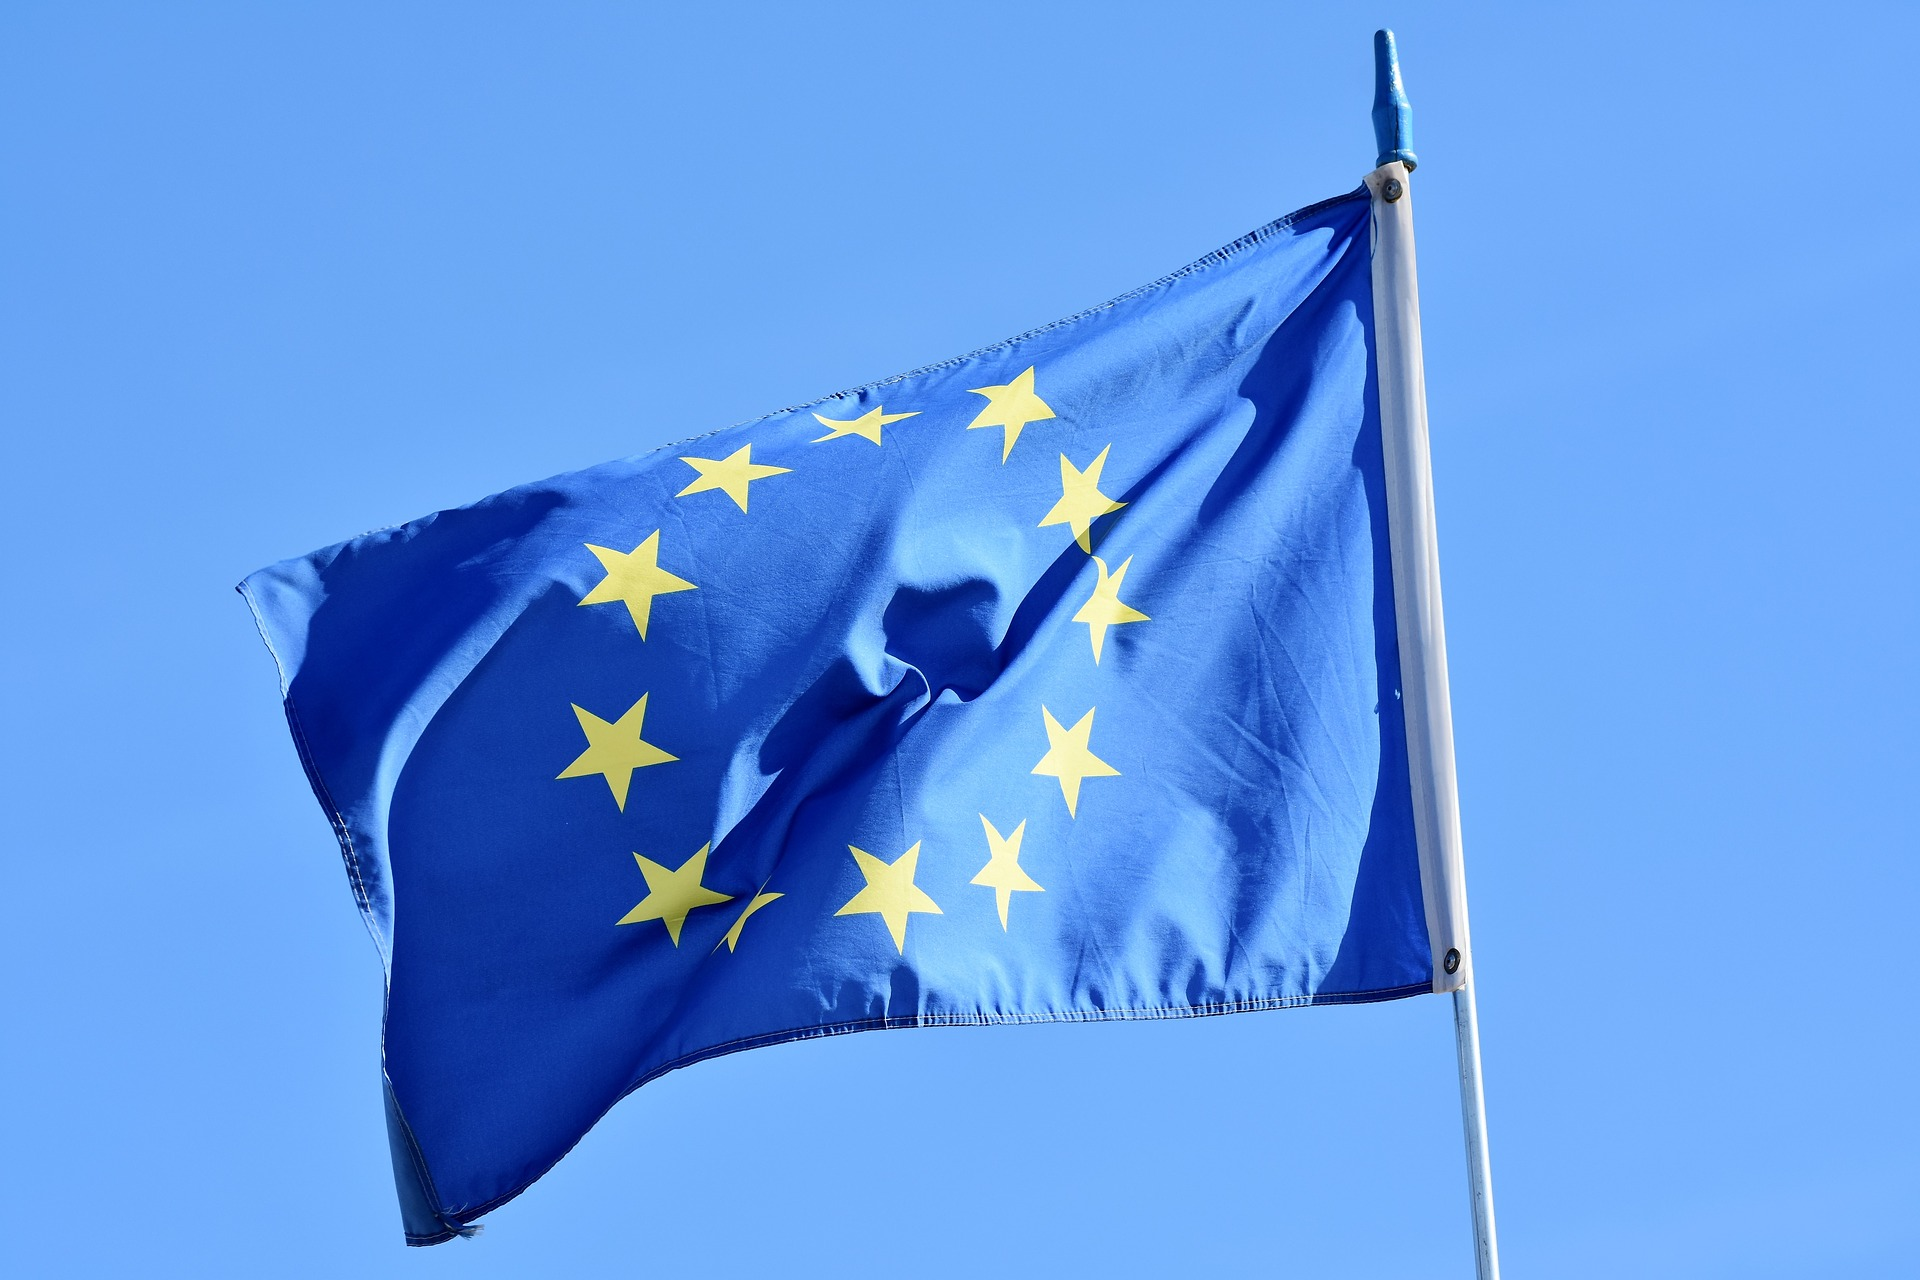 Elezioni europee, Capri23auto, https://pixabay.com/it/photos/bandiera-europa-bandiera-europa-3370970/ CCO